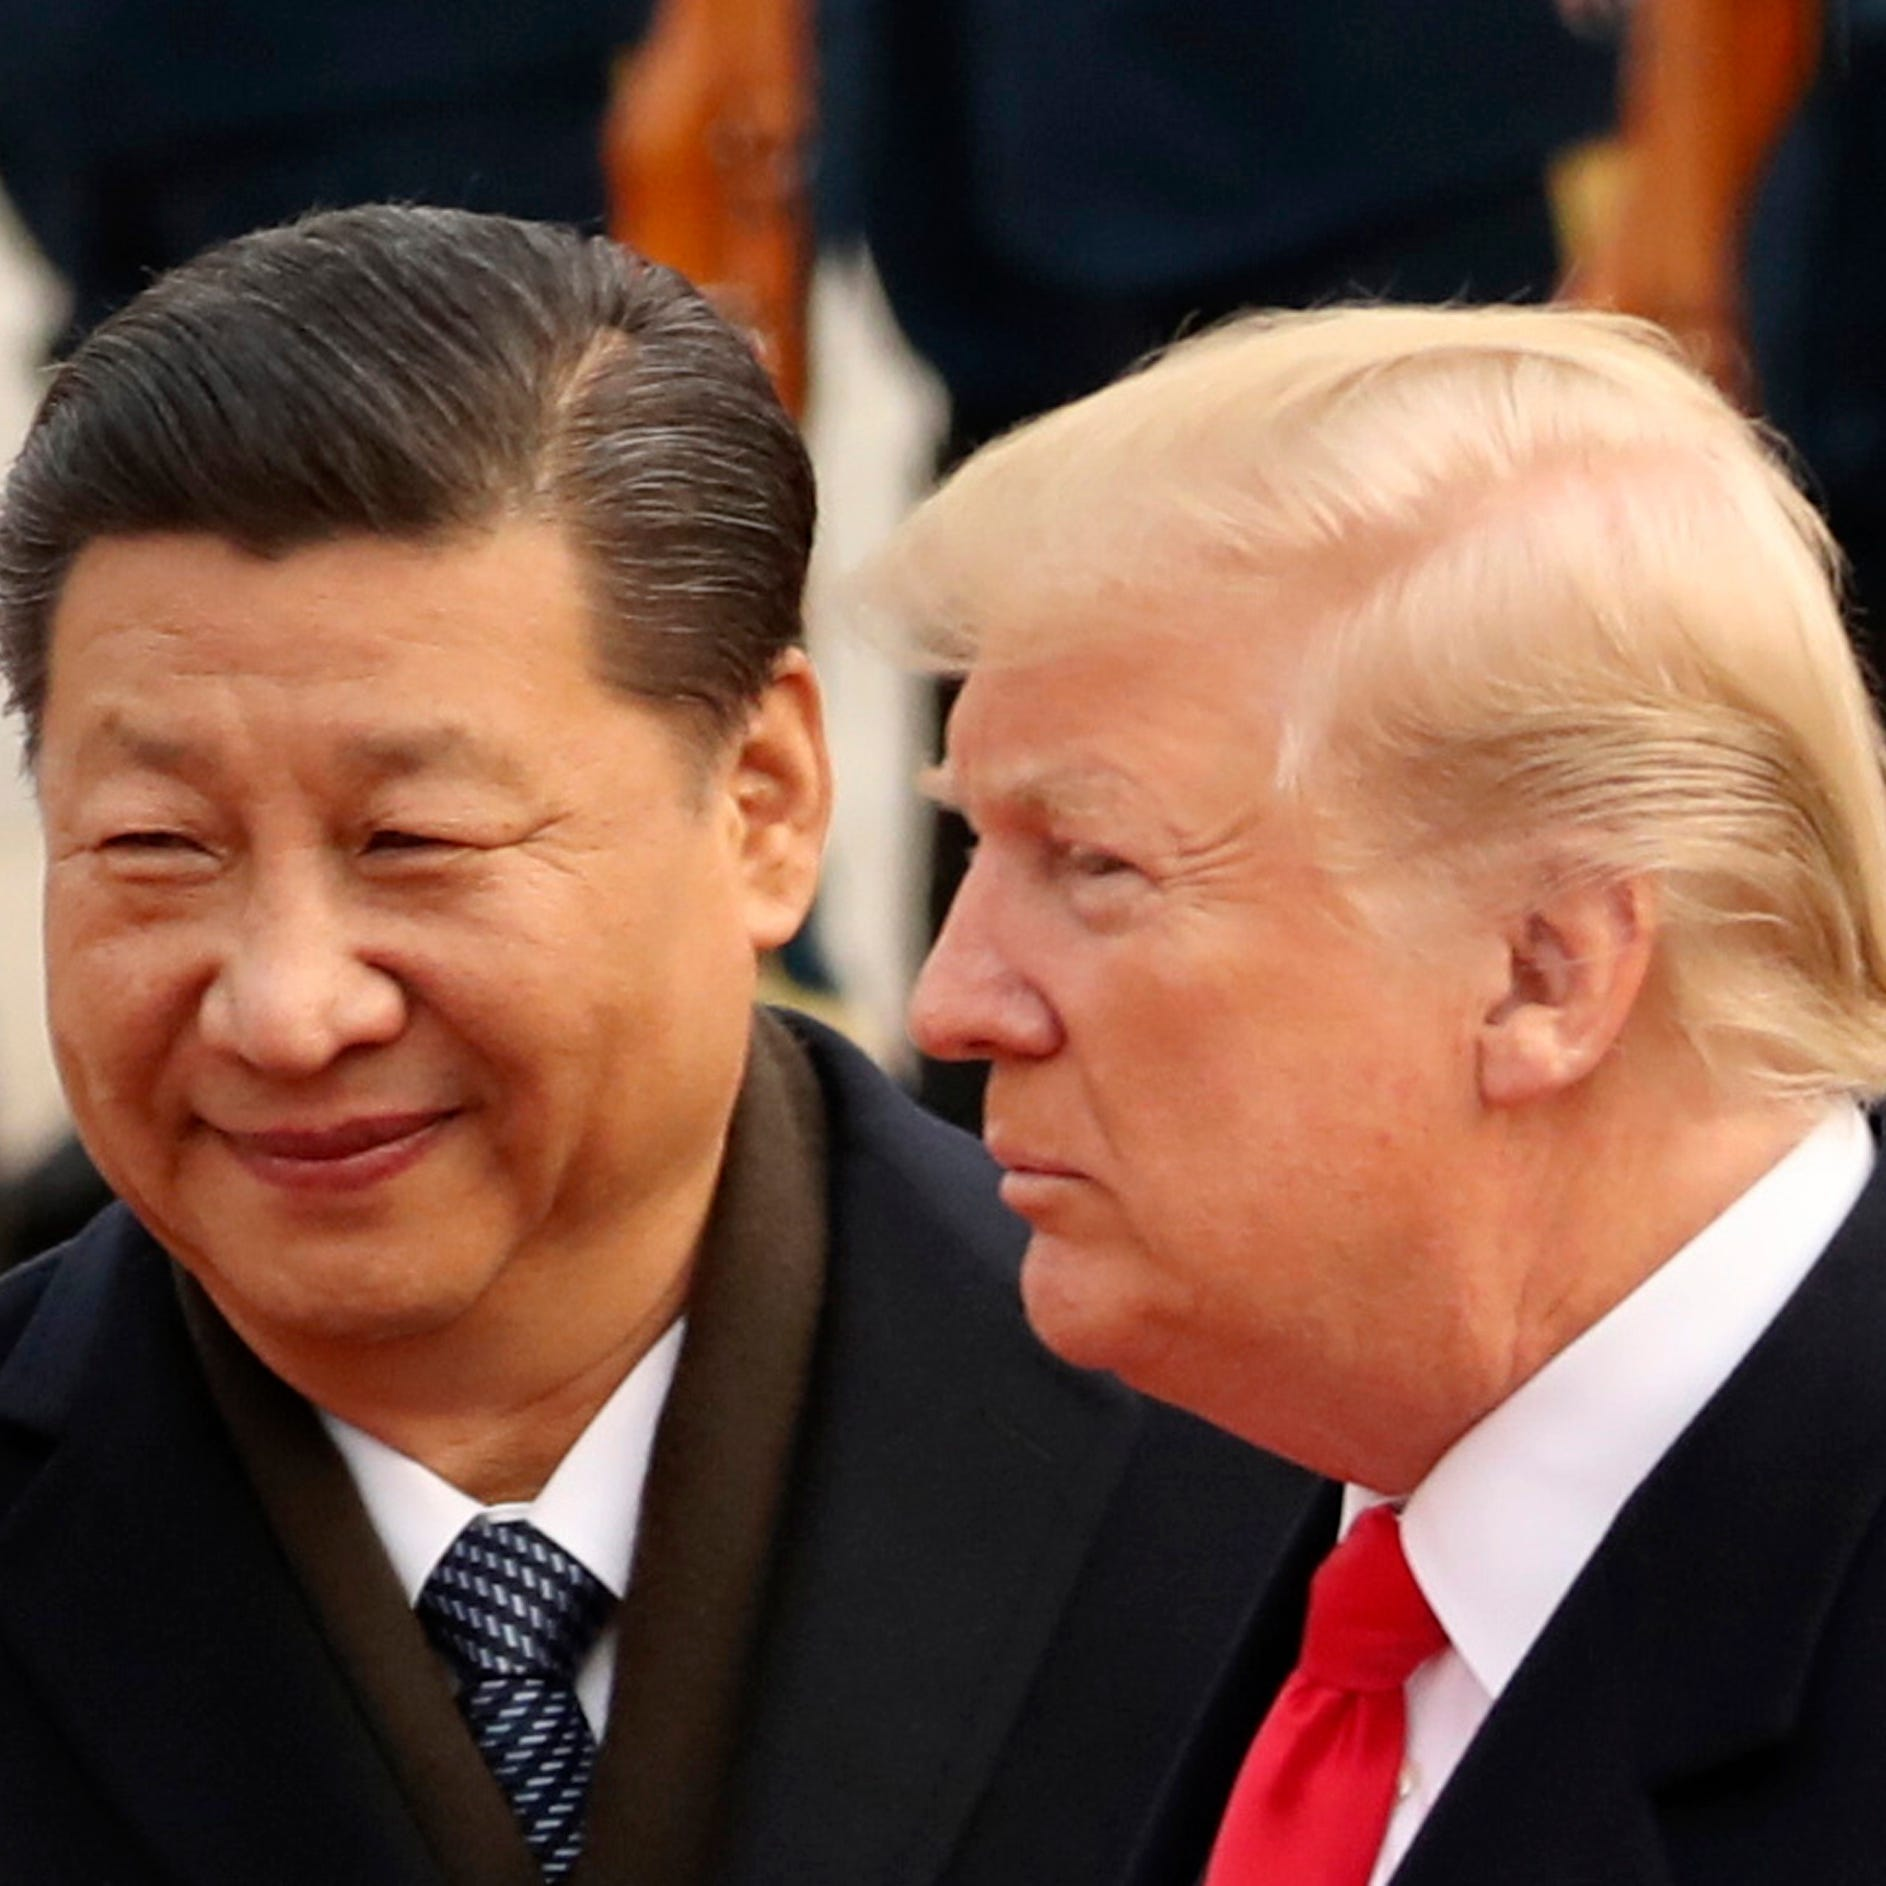 President Trump, let's make a deal with China already